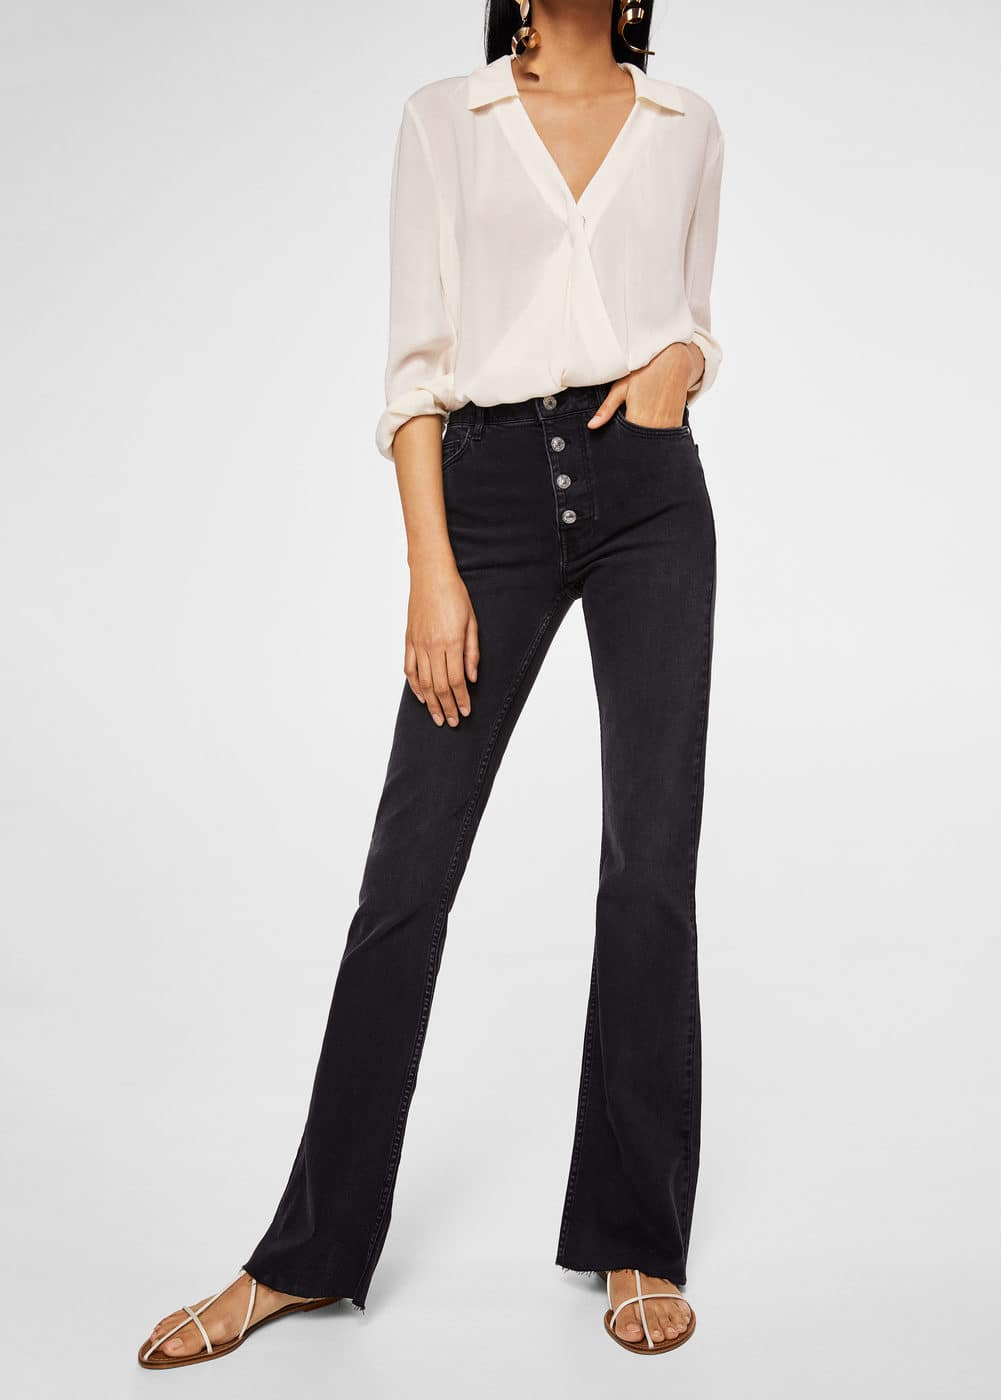 Jeans Flare Newflare by Mango